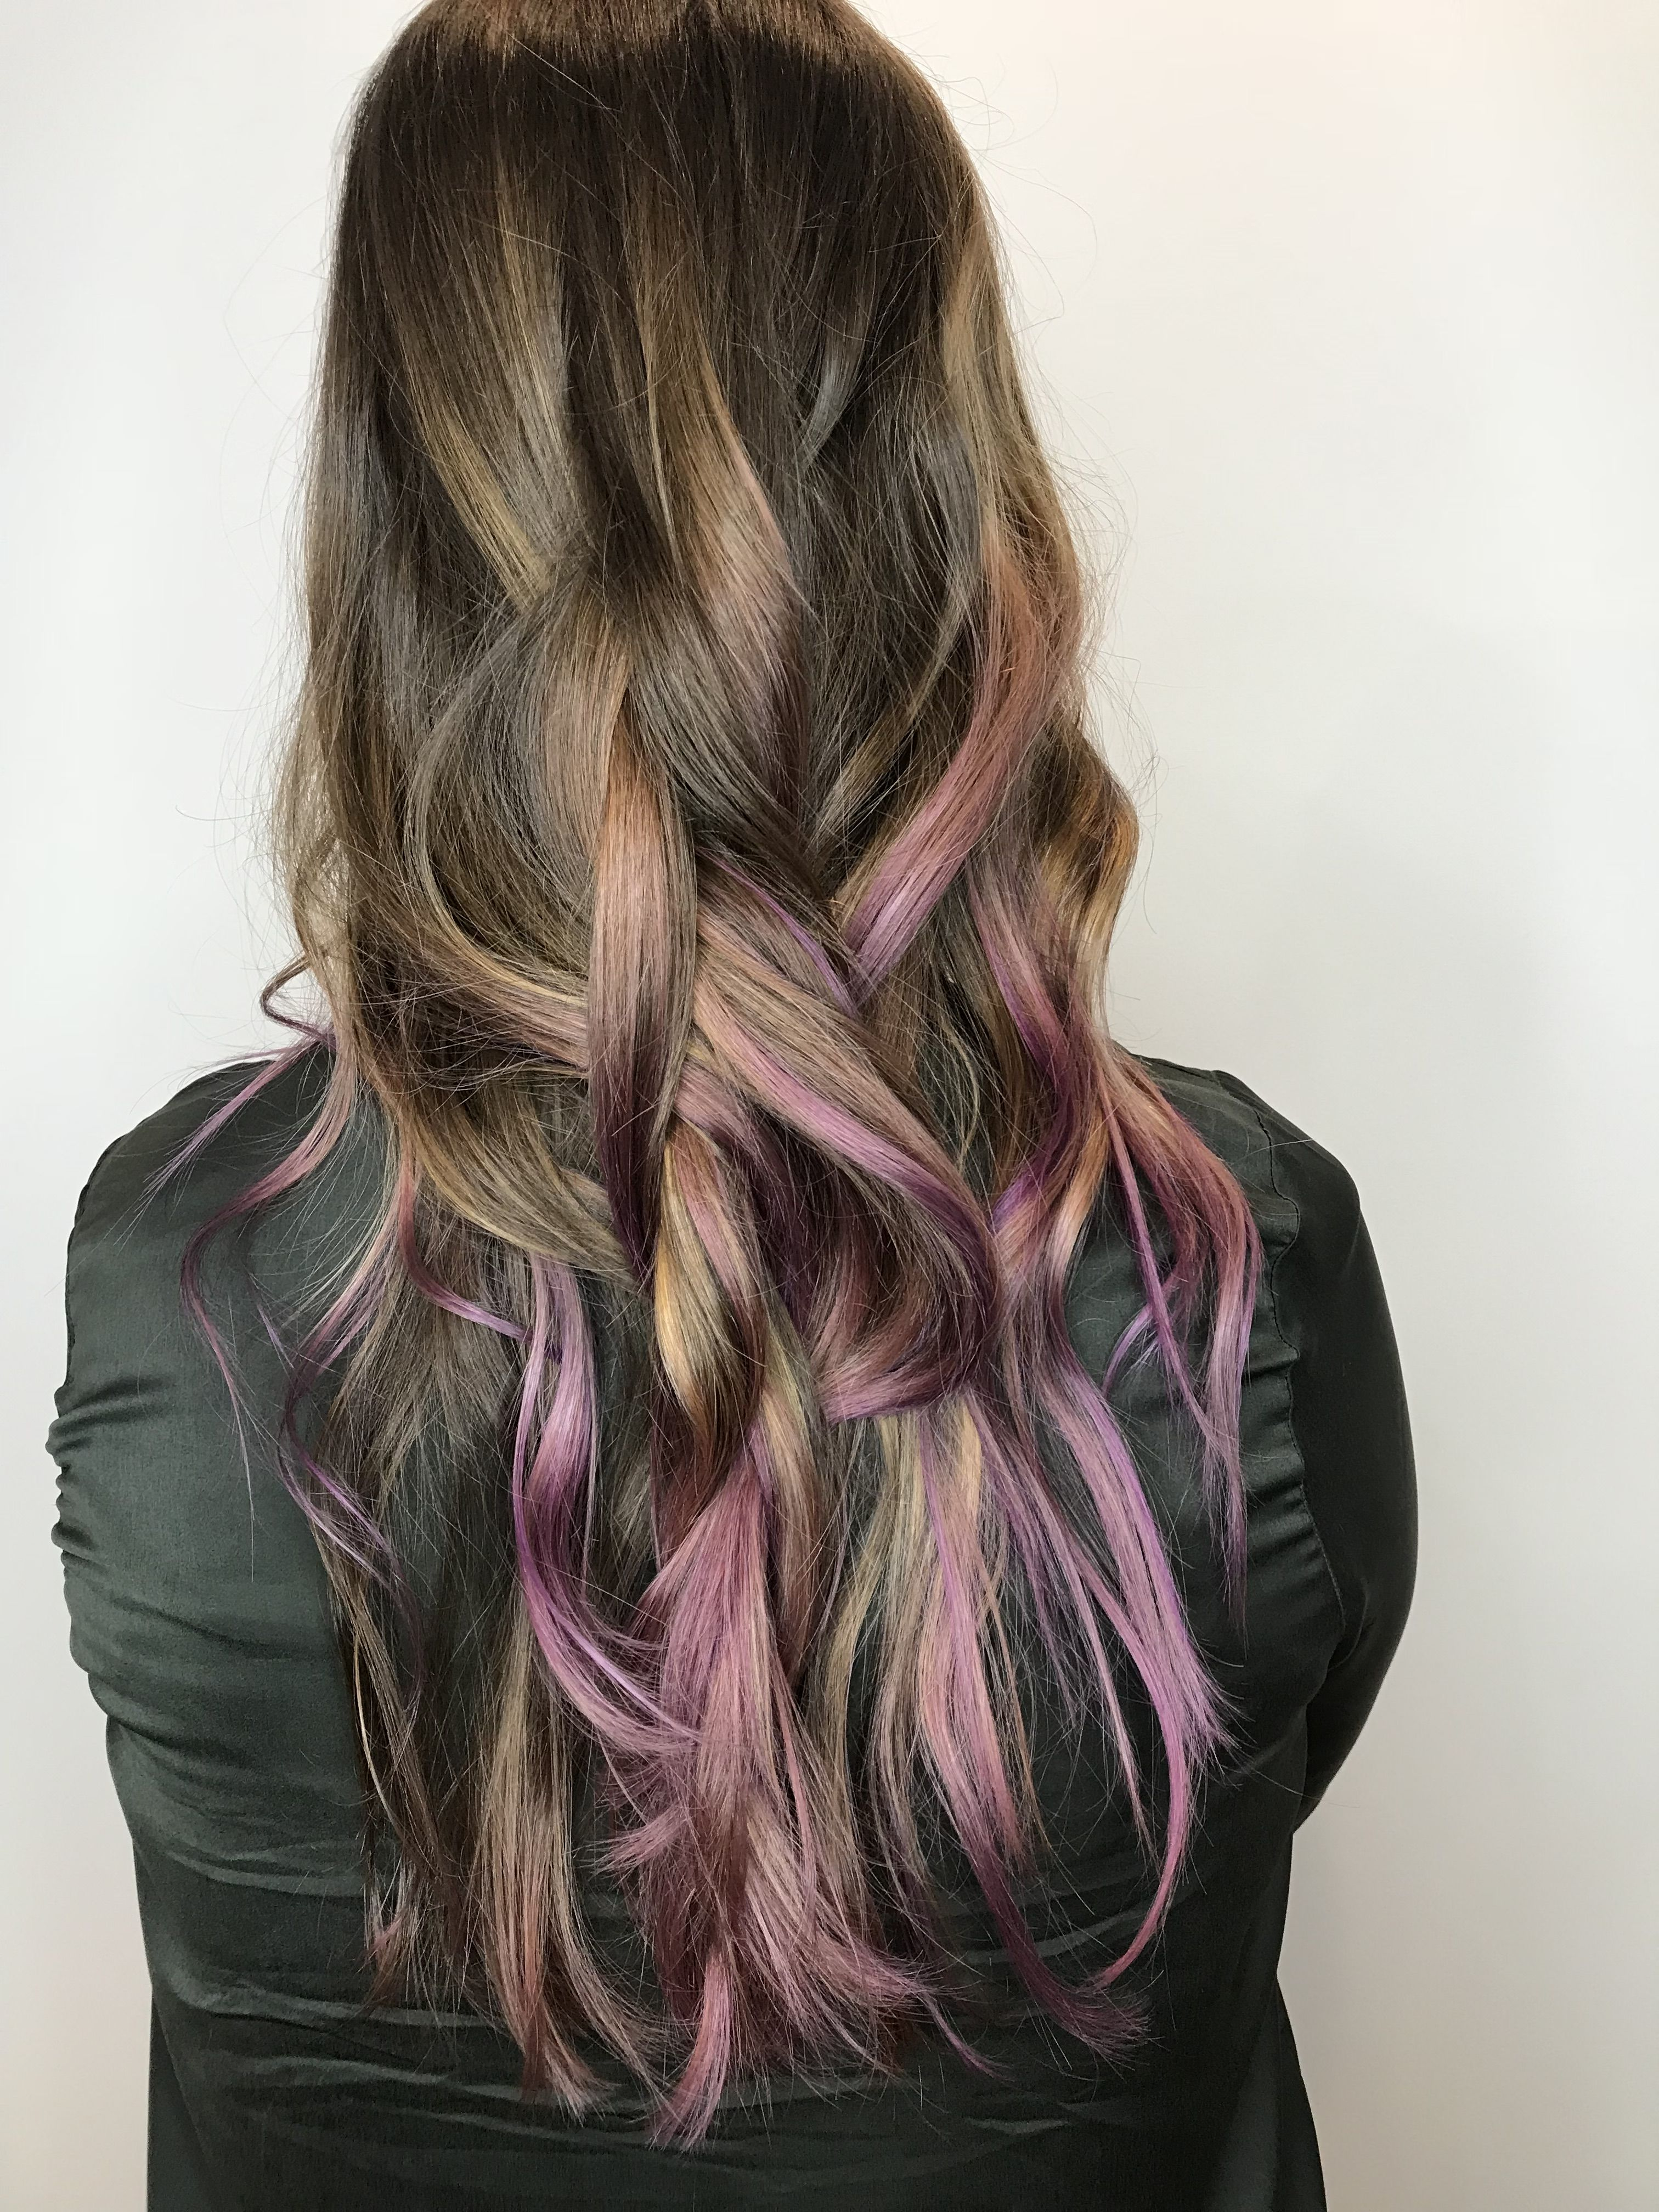 Balayage On Natural Brown Hair With Purple Tips For A Wearable Vivid